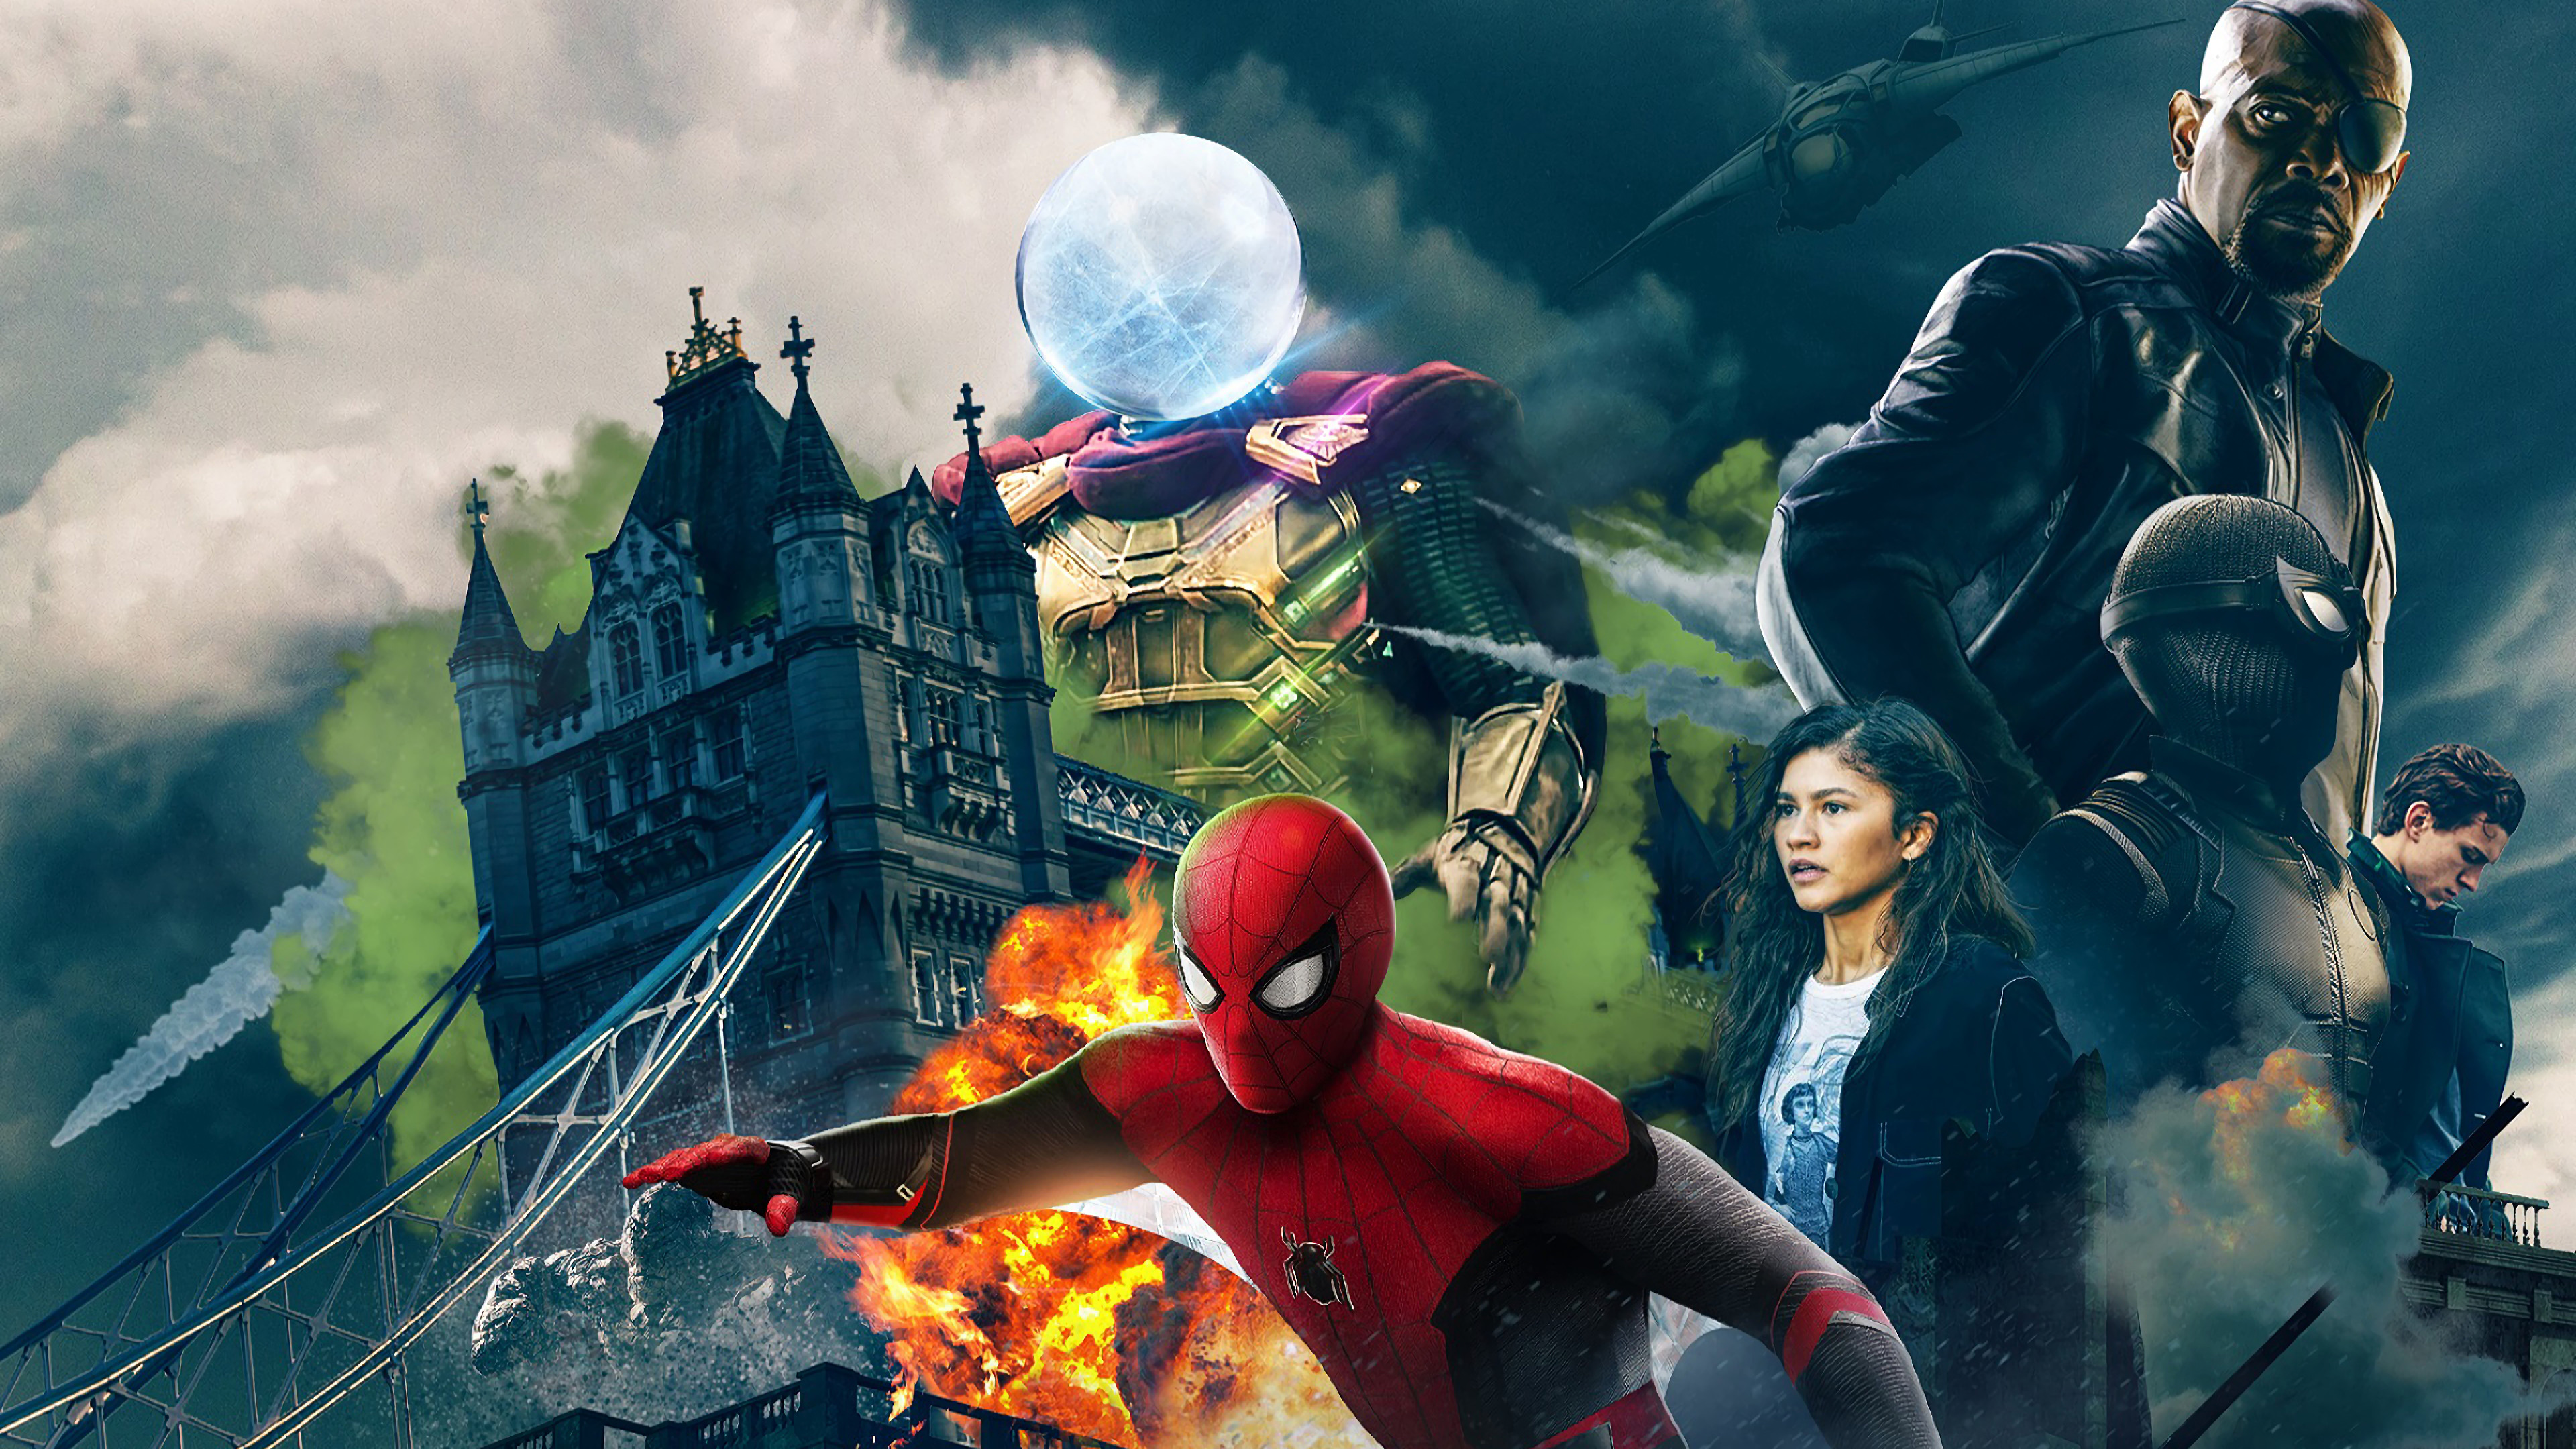 spiderman far fromhome character poster 1562107171 - Spiderman Far Fromhome Character Poster - tom holland wallpapers, superheroes wallpapers, spiderman wallpapers, spiderman far from home wallpapers, movies wallpapers, hd-wallpapers, 4k-wallpapers, 2019 movies wallpapers